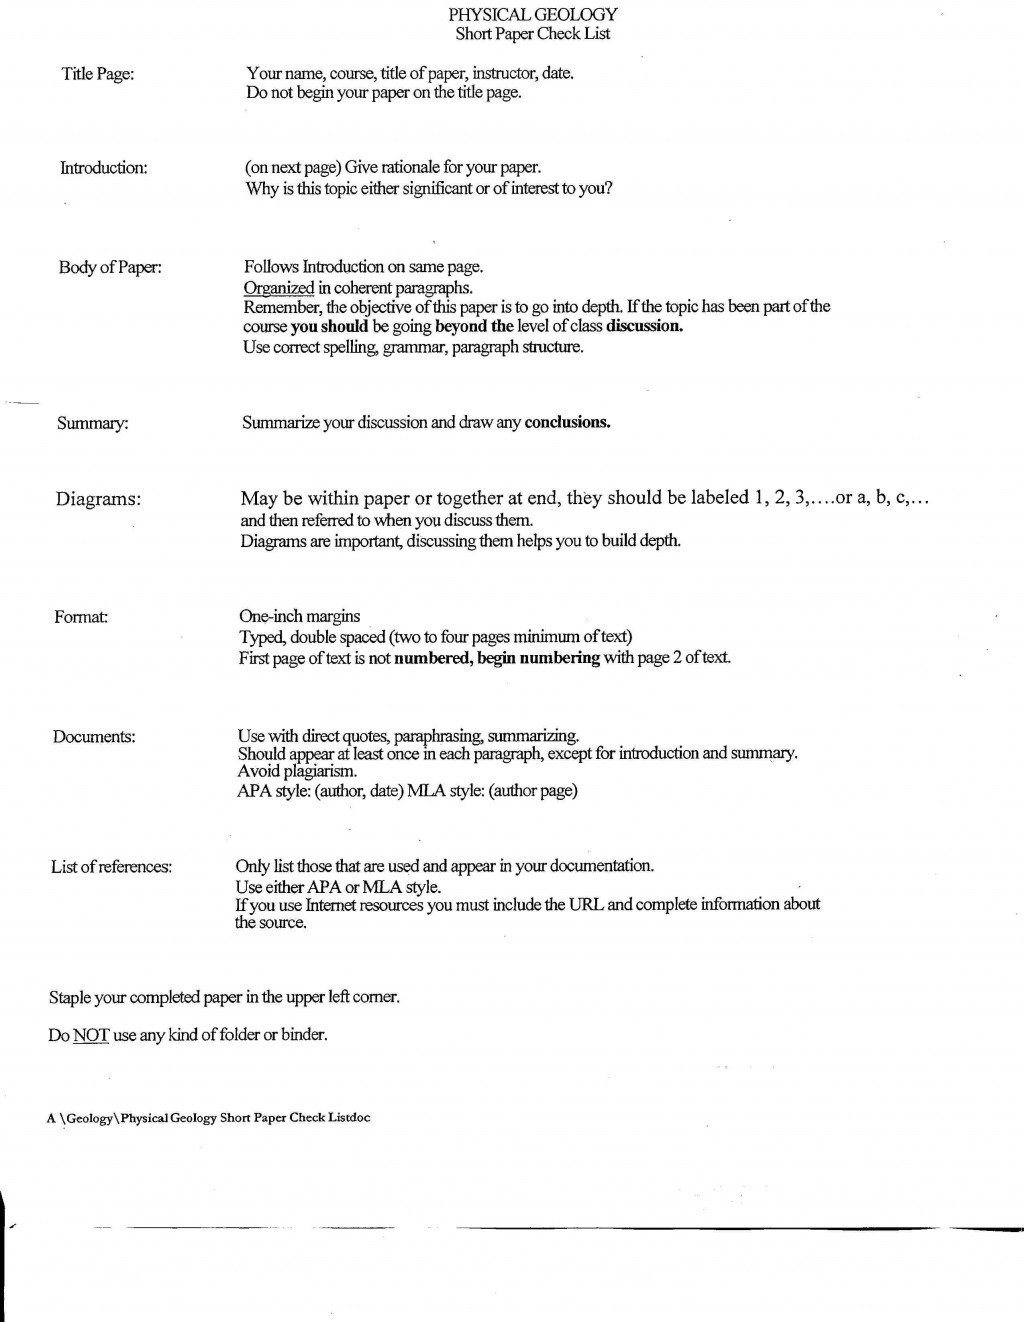 008 Research Paper Short Checklist Business Papers Exceptional Samples Examples Topics Large